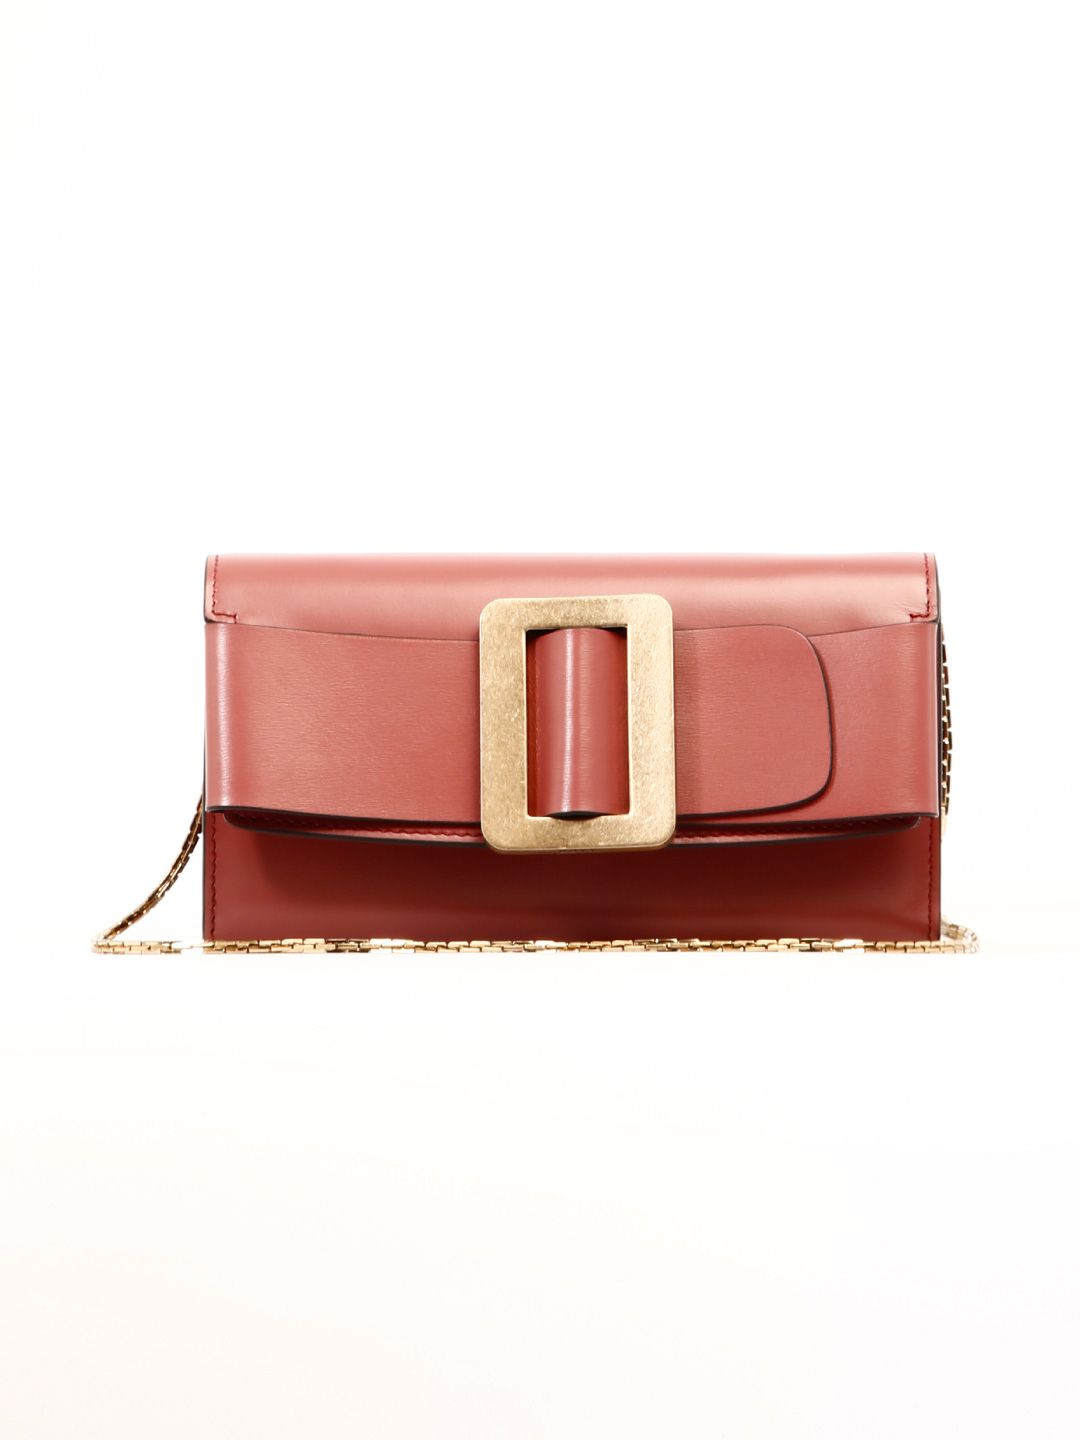 BOYY Wallet Pink Leather